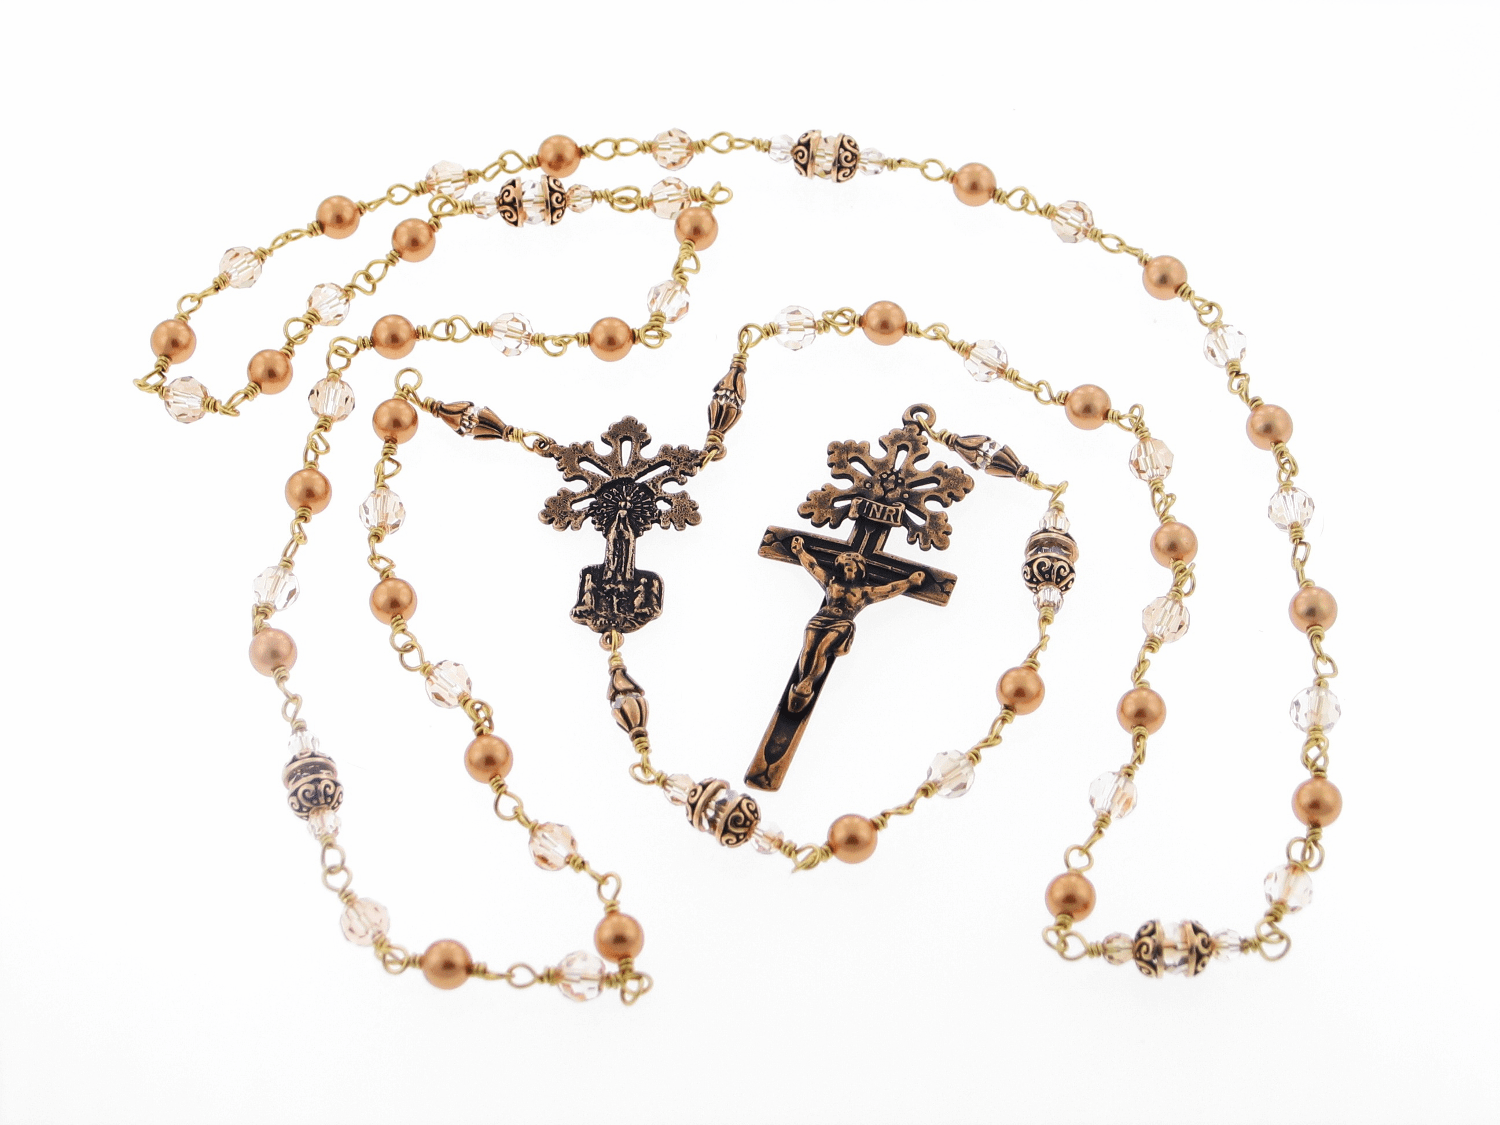 Bronze Radiant Our Lady of Fatima Swarovski Gold Pearl and Crystal Rosary